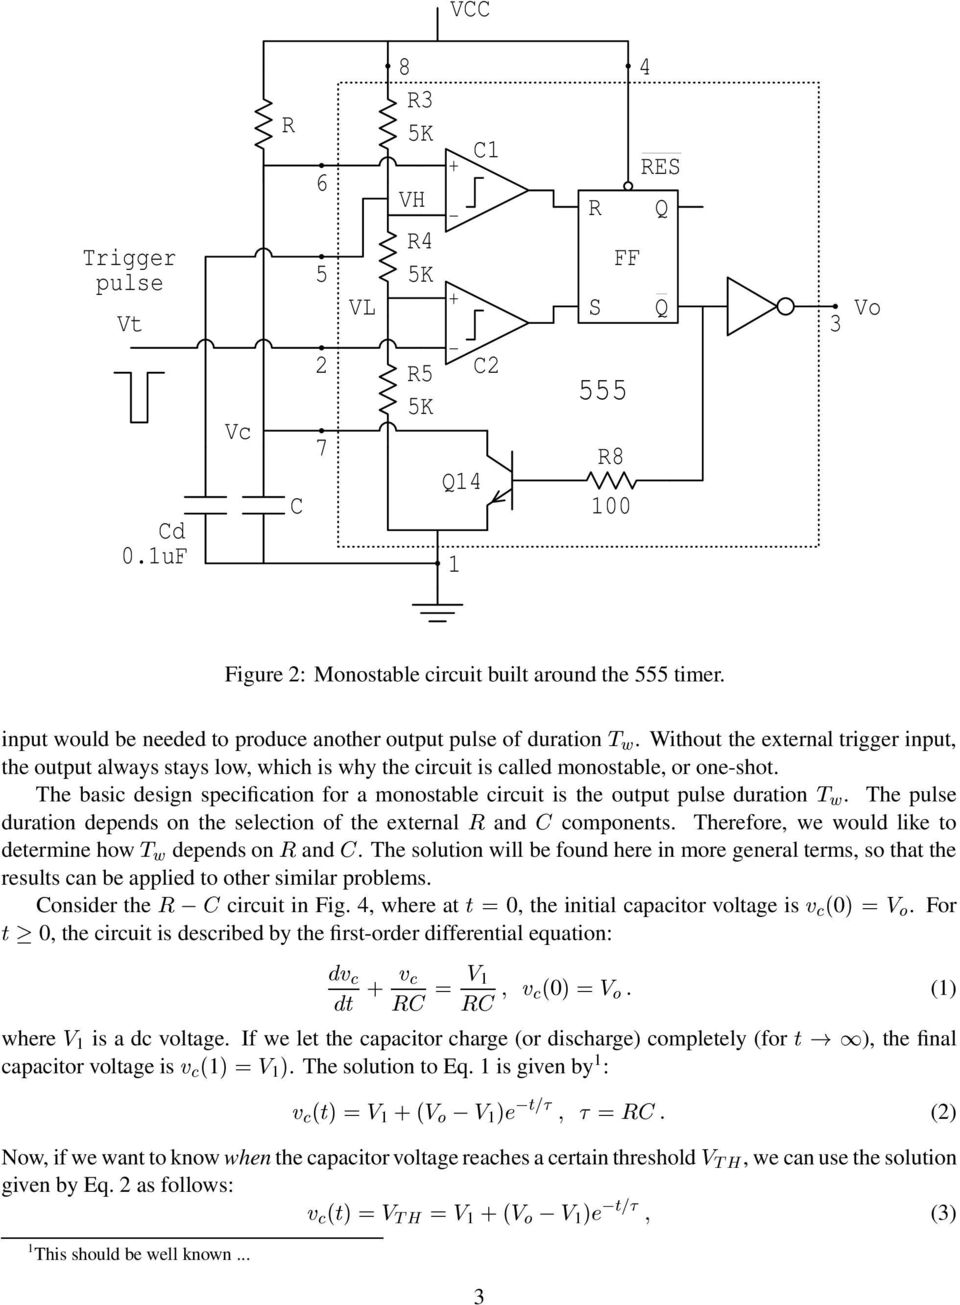 Ecen4618 Experiment 1 Timing Circuits With The 555 Timer Pdf Ne555 Basic Monostable Circuit Design Specificaion For A Monosable Circui Is He Oupu Pulse Duraion T W